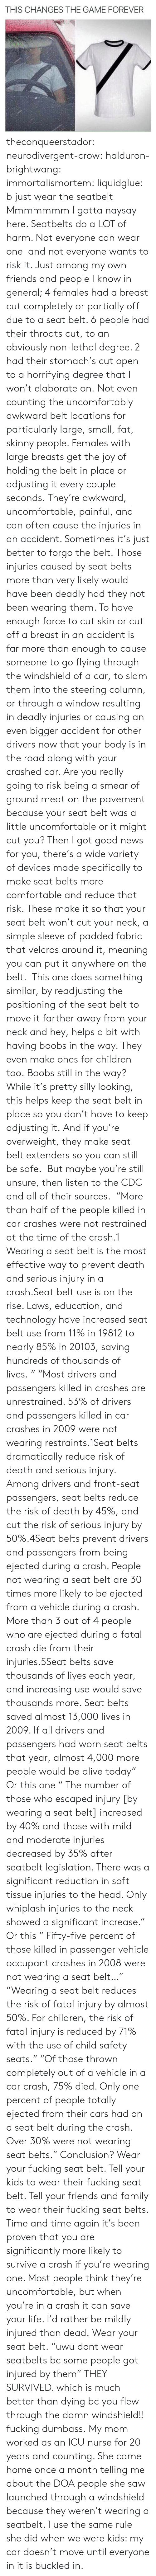 "Alive, Cars, and Children: THIS CHANGES THE GAME FOREVER theconqueerstador:  neurodivergent-crow:  halduron-brightwang:  immortalismortem:  liquidglue:   b just wear the seatbelt   Mmmmmmm I gotta naysay here. Seatbelts do a LOT of harm. Not everyone can wear one  and not everyone wants to risk it. Just among my own friends and people I know in general; 4 females had a breast cut completely or partially off due to a seat belt. 6 people had their throats cut, to an obviously non-lethal degree. 2 had their stomach's cut open to a horrifying degree that I won't elaborate on. Not even counting the uncomfortably awkward belt locations for particularly large, small, fat, skinny people. Females with large breasts get the joy of holding the belt in place or adjusting it every couple seconds. They're awkward, uncomfortable, painful, and can often cause the injuries in an accident. Sometimes it's just better to forgo the belt.  Those injuries caused by seat belts more than very likely would have been deadly had they not been wearing them. To have enough force to cut skin or cut off a breast in an accident is far more than enough to cause someone to go flying through the windshield of a car, to slam them into the steering column, or through a window resulting in deadly injuries or causing an even bigger accident for other drivers now that your body is in the road along with your crashed car. Are you really going to risk being a smear of ground meat on the pavement because your seat belt was a little uncomfortable or it might cut you? Then I got good news for you, there's a wide variety of devices made specifically to make seat belts more comfortable and reduce that risk. These make it so that your seat belt won't cut your neck, a simple sleeve of padded fabric that velcros around it, meaning you can put it anywhere on the belt.  This one does something similar, by readjusting the positioning of the seat belt to move it farther away from your neck and hey, helps a bit with having boobs in the way. They even make ones for children too. Boobs still in the way? While it's pretty silly looking, this helps keep the seat belt in place so you don't have to keep adjusting it. And if you're overweight, they make seat belt extenders so you can still be safe.  But maybe you're still unsure, then listen to the CDC and all of their sources.  ""More than half of the people killed in car crashes were not restrained at the time of the crash.1 Wearing a seat belt is the most effective way to prevent death and serious injury in a crash.Seat belt use is on the rise. Laws, education, and technology have increased seat belt use from 11% in 19812 to nearly 85% in 20103, saving hundreds of thousands of lives. "" ""Most drivers and passengers killed in crashes are unrestrained. 53% of drivers and passengers killed in car crashes in 2009 were not wearing restraints.1Seat belts dramatically reduce risk of death and serious injury. Among drivers and front-seat passengers, seat belts reduce the risk of death by 45%, and cut the risk of serious injury by 50%.4Seat belts prevent drivers and passengers from being ejected during a crash. People not wearing a seat belt are 30 times more likely to be ejected from a vehicle during a crash. More than 3 out of 4 people who are ejected during a fatal crash die from their injuries.5Seat belts save thousands of lives each year, and increasing use would save thousands more. Seat belts saved almost 13,000 lives in 2009. If all drivers and passengers had worn seat belts that year, almost 4,000 more people would be alive today"" Or this one ""   The number of those who escaped injury [by wearing a seat belt] increased by 40% and those with mild and moderate injuries decreased by 35% after seatbelt legislation. There was a significant reduction in soft tissue injuries to the head. Only whiplash injuries to the neck showed a significant increase."" Or this ""  Fifty-five percent of those killed in passenger vehicle occupant crashes in 2008 were not wearing a seat belt…"" ""Wearing a seat belt reduces the risk of fatal injury by almost 50%. For children, the risk of fatal injury is reduced by 71% with the use of child safety seats."" ""Of those thrown completely out of a vehicle in a car crash, 75% died. Only one percent of people totally ejected from their cars had on a seat belt during the crash. Over 30% were not wearing seat belts."" Conclusion? Wear your fucking seat belt. Tell your kids to wear their fucking seat belt. Tell your friends and family to wear their fucking seat belts. Time and time again it's been proven that you are significantly more likely to survive a crash if you're wearing one. Most people think they're uncomfortable, but when you're in a crash it can save your life. I'd rather be mildly injured than dead. Wear your seat belt.   ""uwu dont wear seatbelts bc some people got injured by them"" THEY SURVIVED. which is much better than dying bc you flew through the damn windshield!! fucking dumbass.   My mom worked as an ICU nurse for 20 years and counting. She came home once a month telling me about the DOA people she saw launched through a windshield because they weren't wearing a seatbelt. I use the same rule she did when we were kids: my car doesn't move until everyone in it is buckled in."